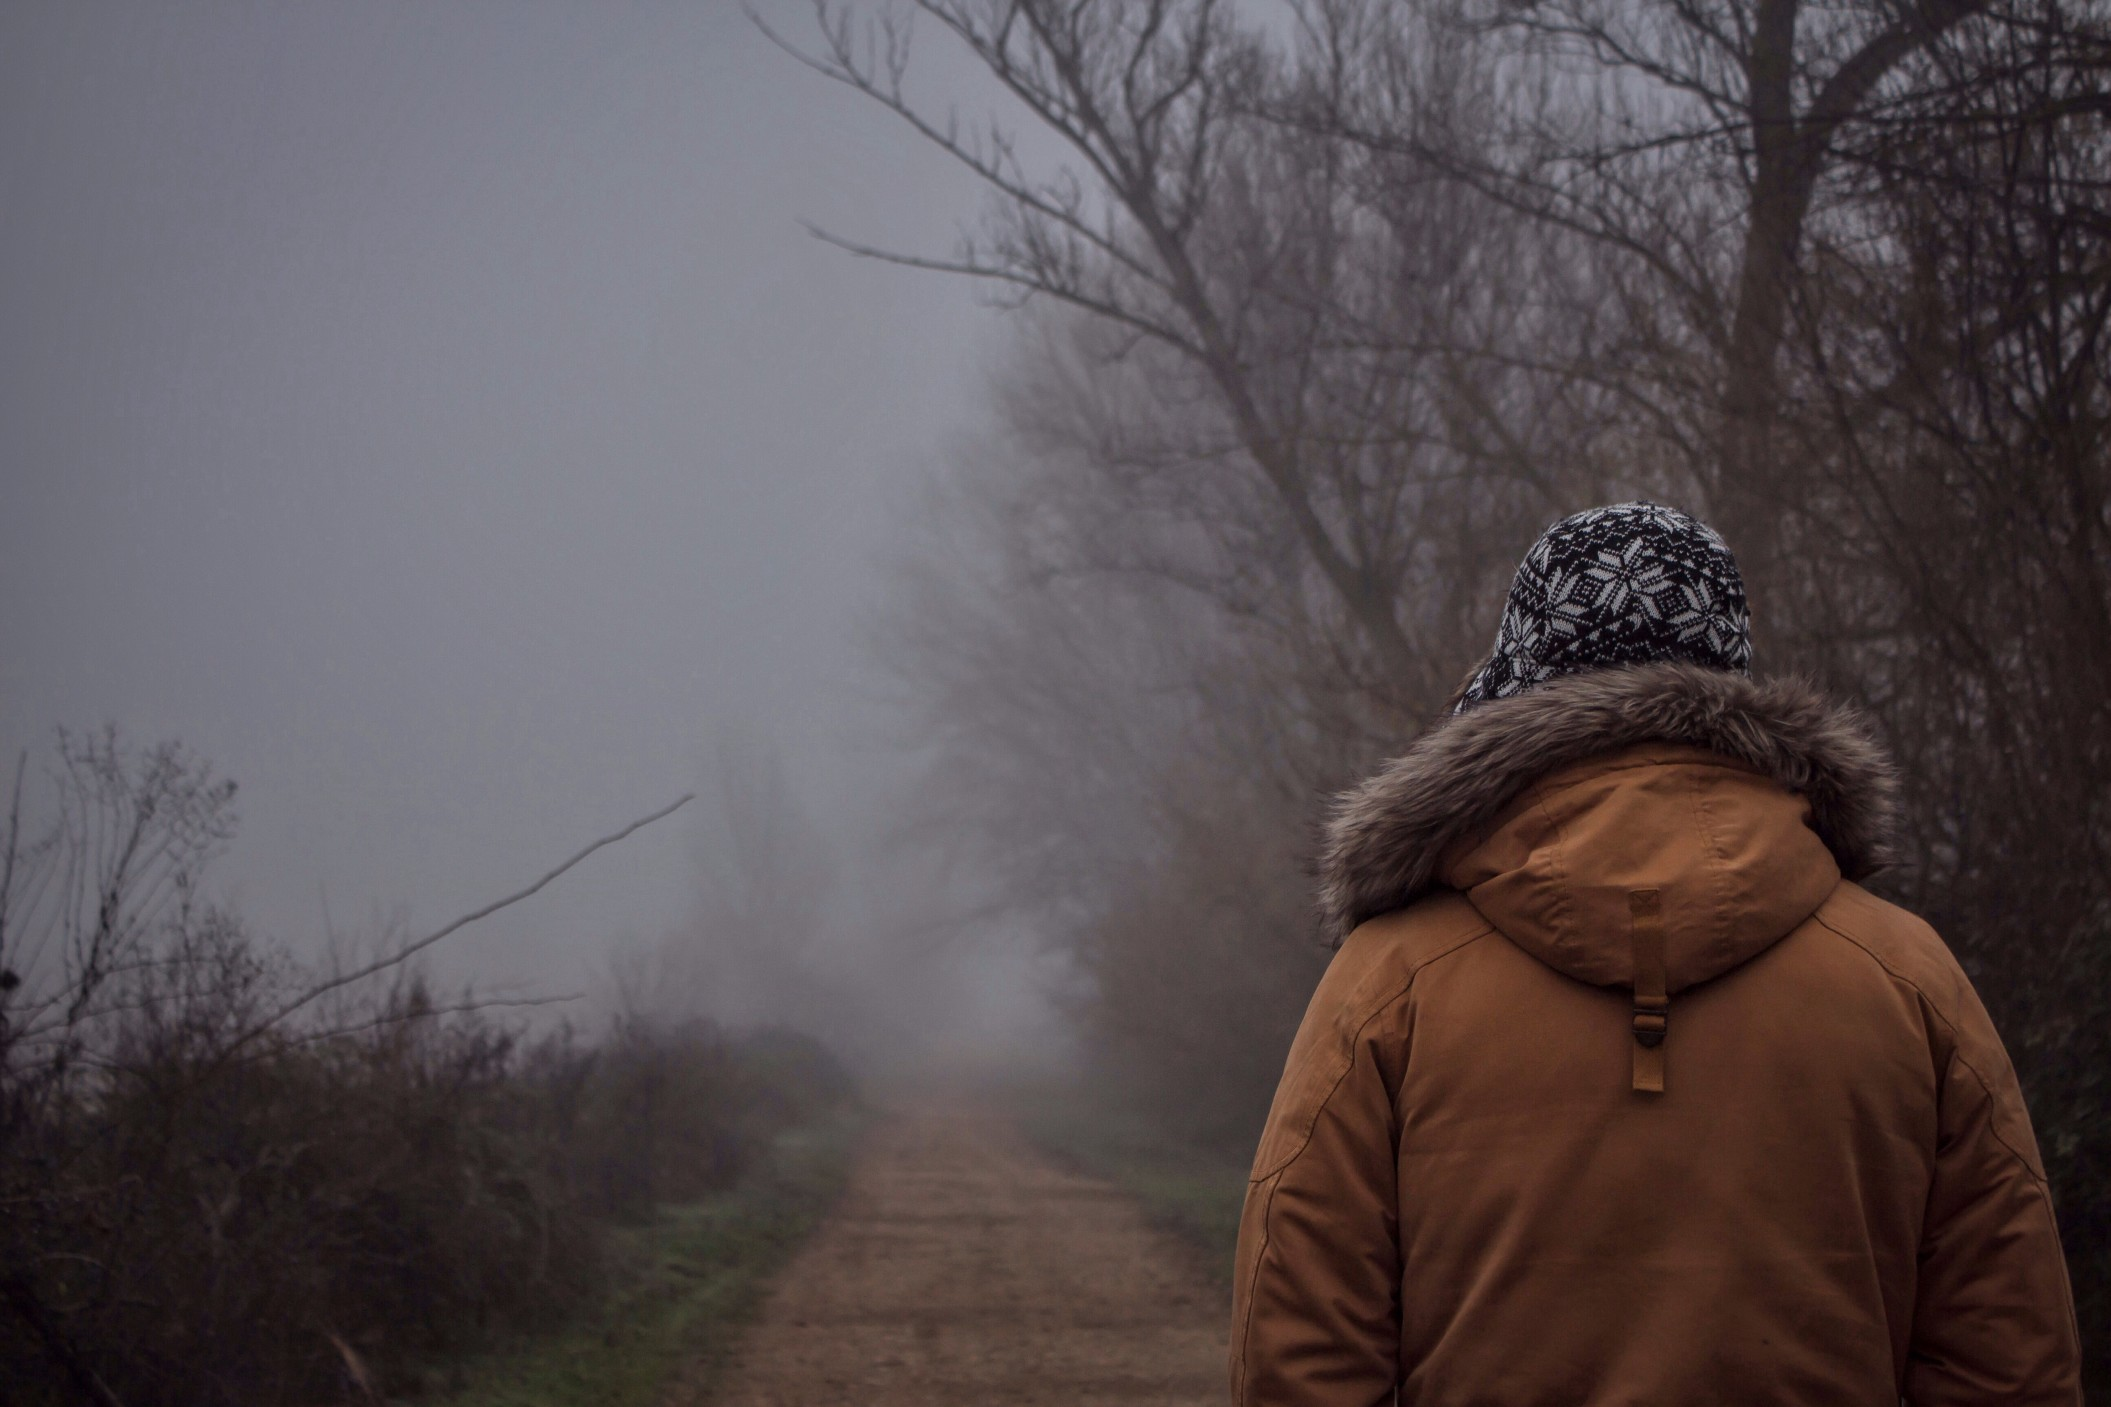 A person walks alone in the cold along a foggy country road.